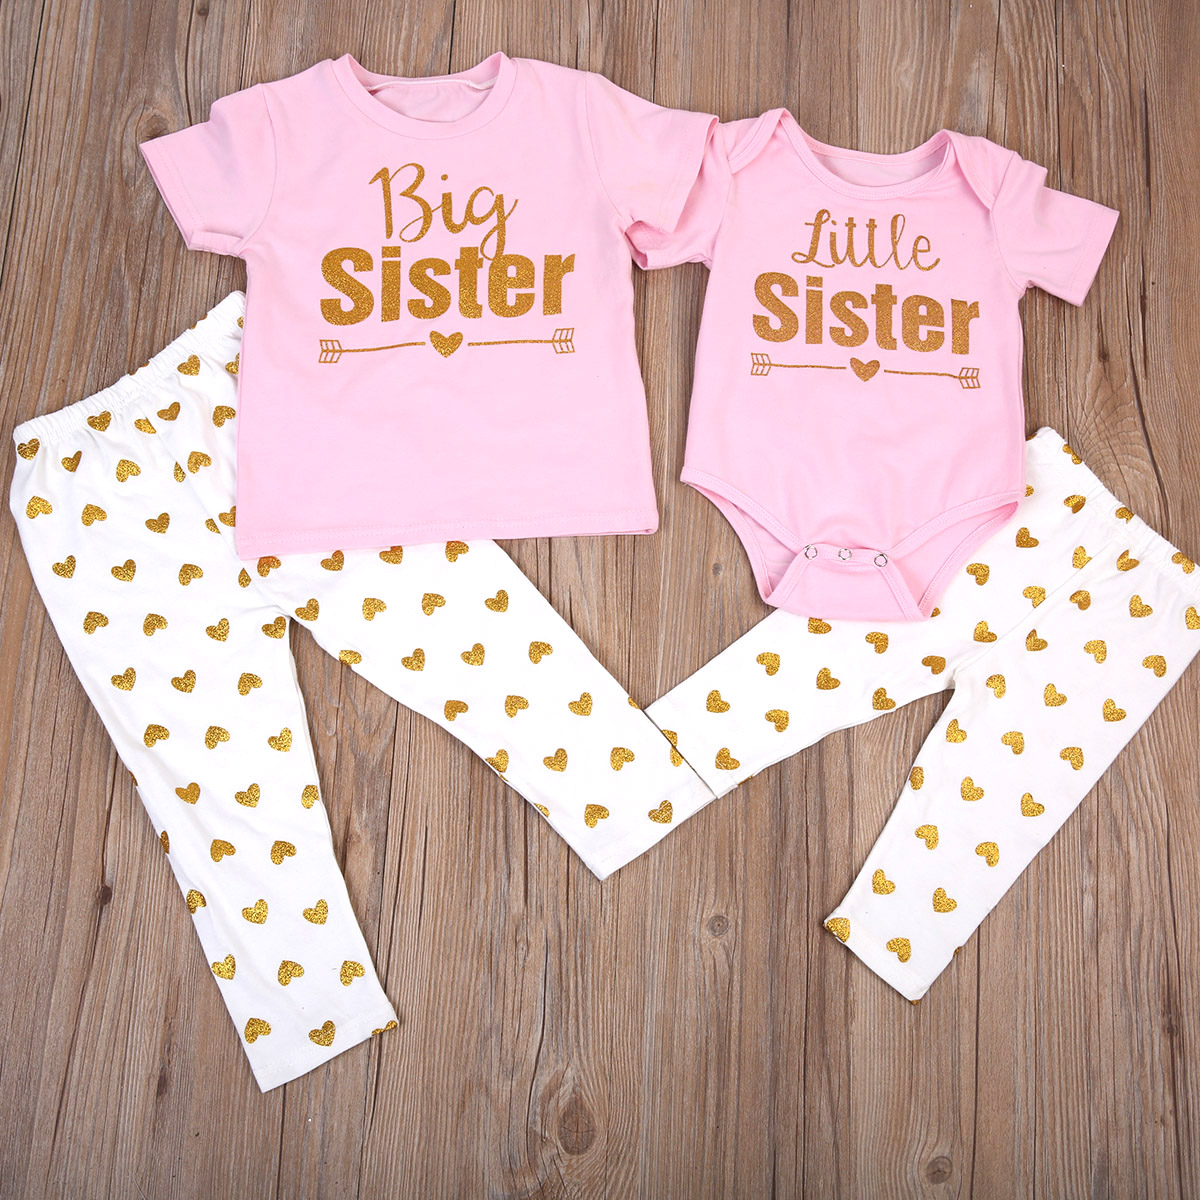 2PCS Set Sister Match Clothes 2017 New Big Sister T-shirt Tops Pant Little Sister Baby Bodysuit+Pant Heart Print Outfit Clothes newborn infant kid girl clothes summer cotton big sister t shirt skirt little sister bodysuit shorts 2pcsset baby clothes outfit